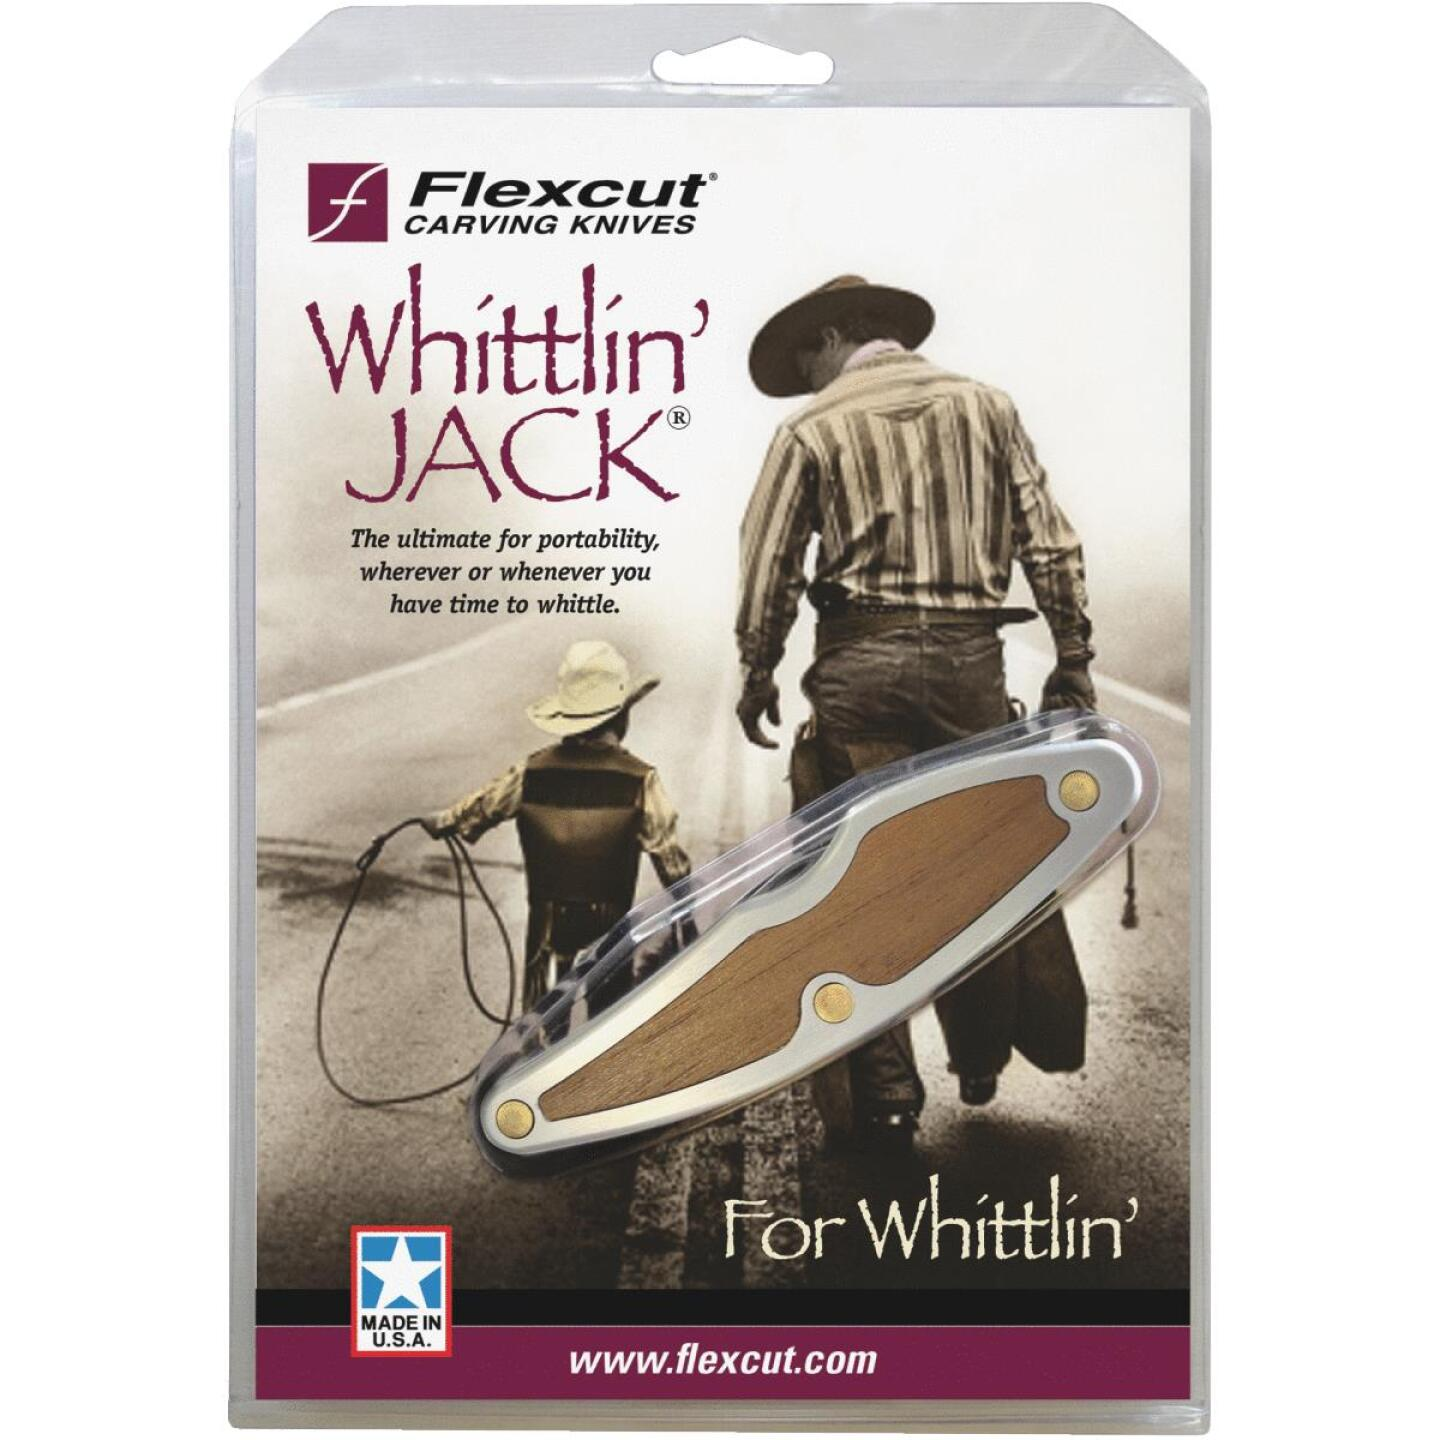 Flexcut Whittlin' Jack 2-Blade Carving Knife, 1-1/2 In. Detail & 2 In. Roughing Image 1